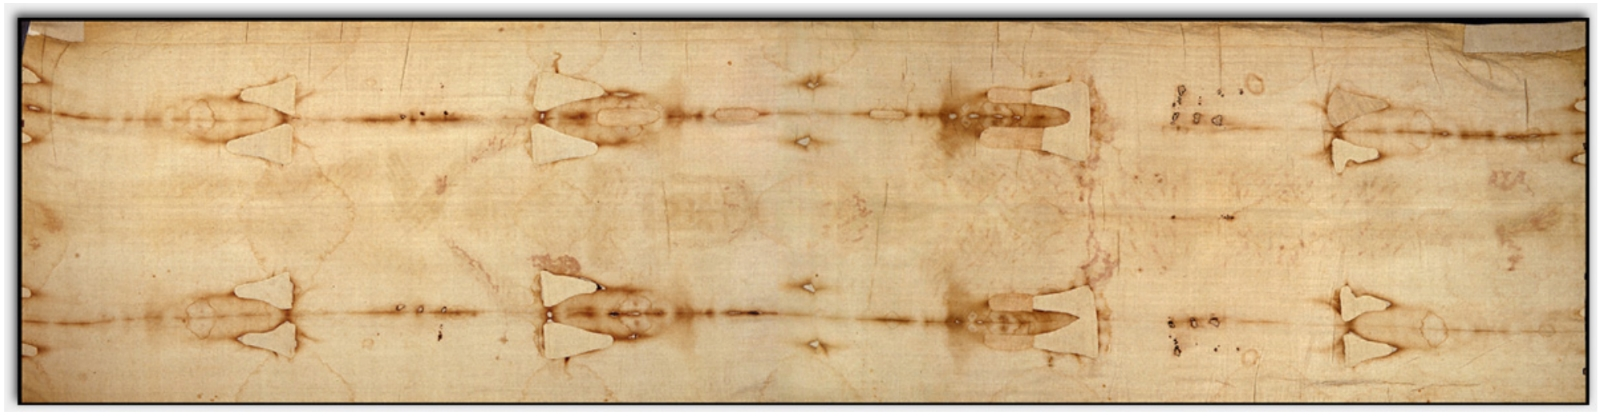 Shroud of Turin - June 8, 2019 » Mount Carmel Spirituality Centre